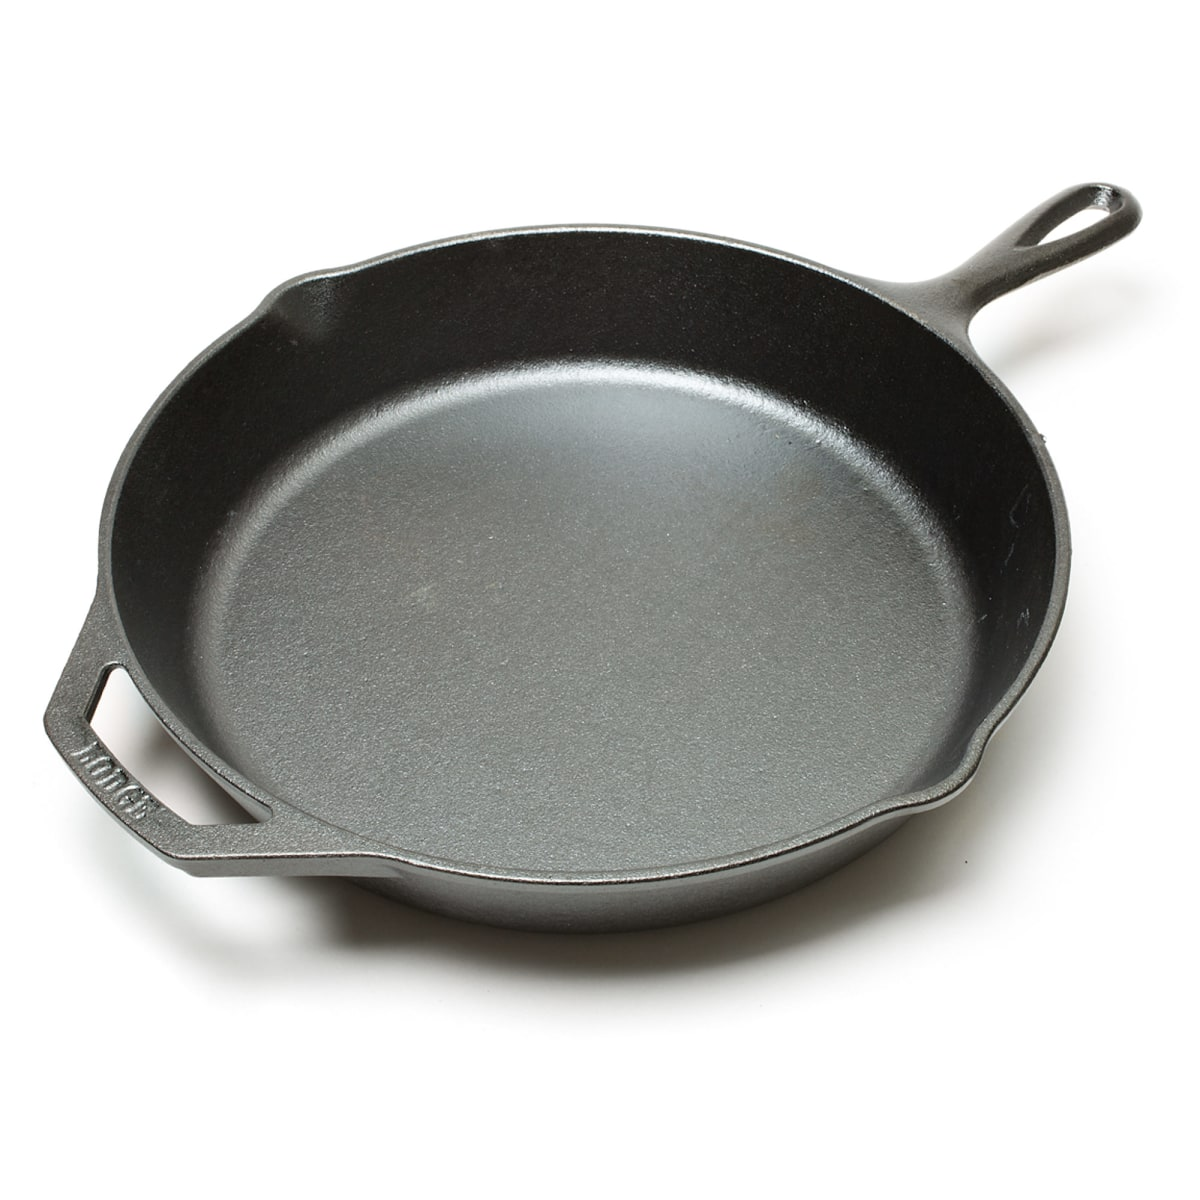 Dating lodge cast iron cookware